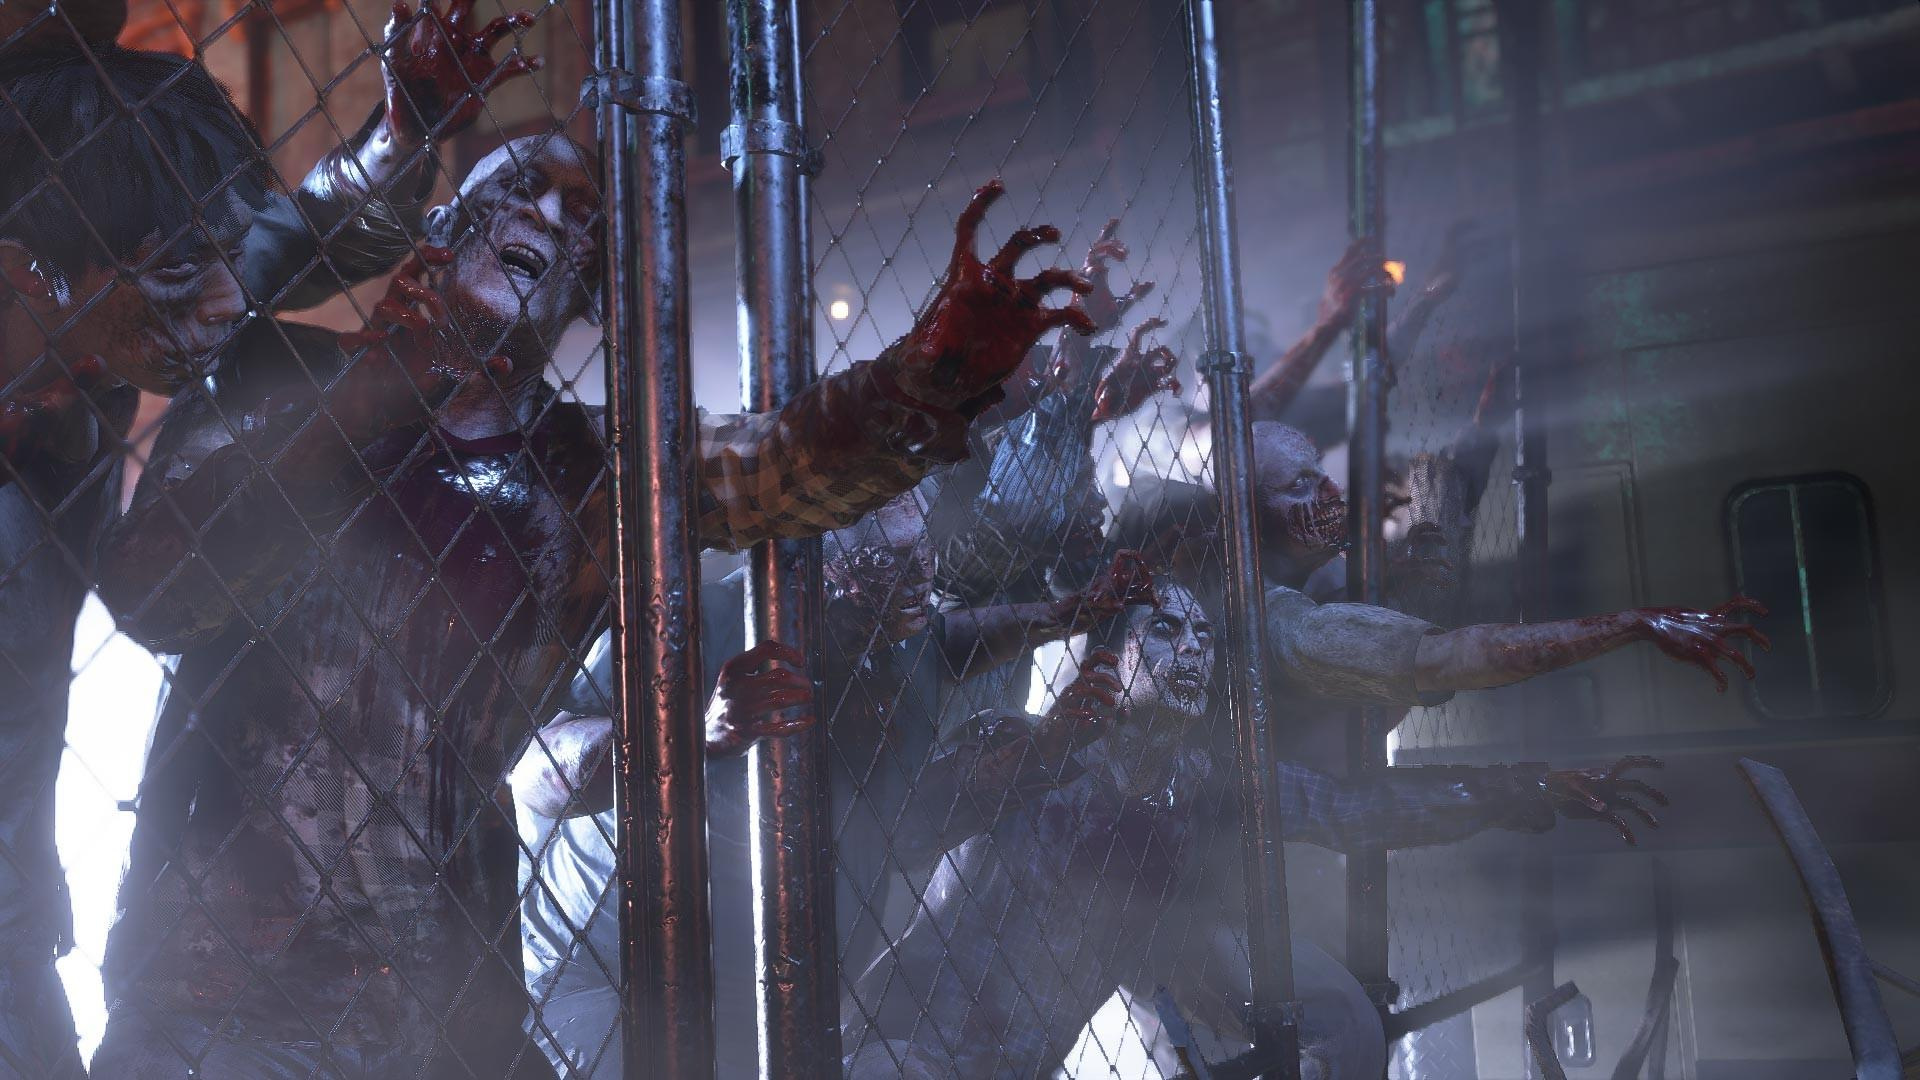 The Resident Evil series is best known for its zombies and other terrifying bioweapons